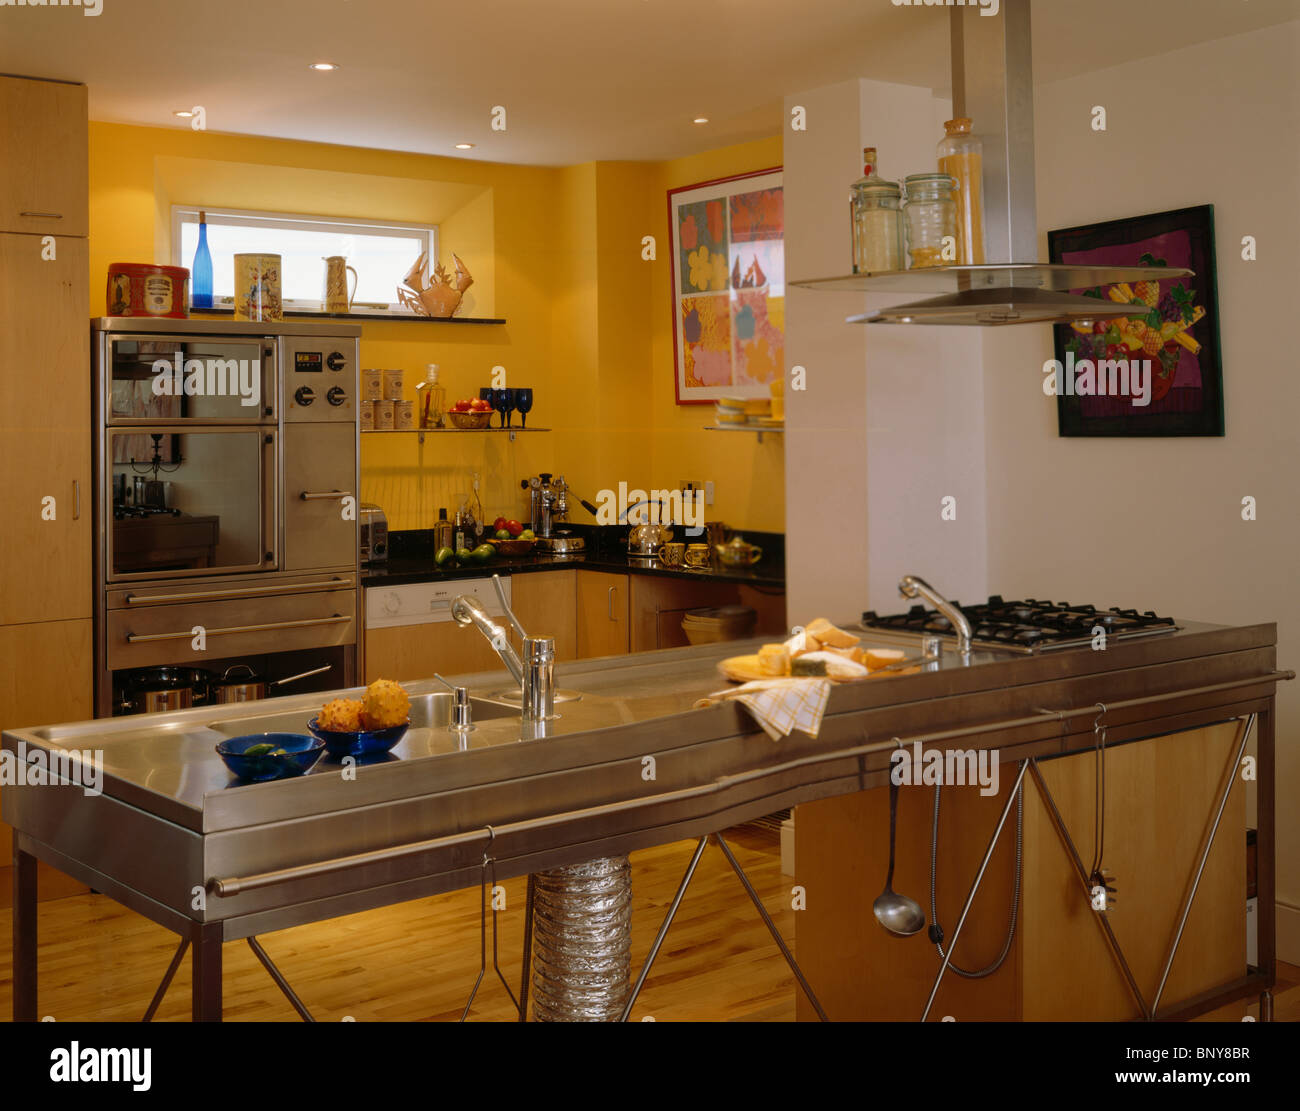 Stainless Steel Freestanding Double Sink And Hob Unit In Modern Stock Photo Alamy